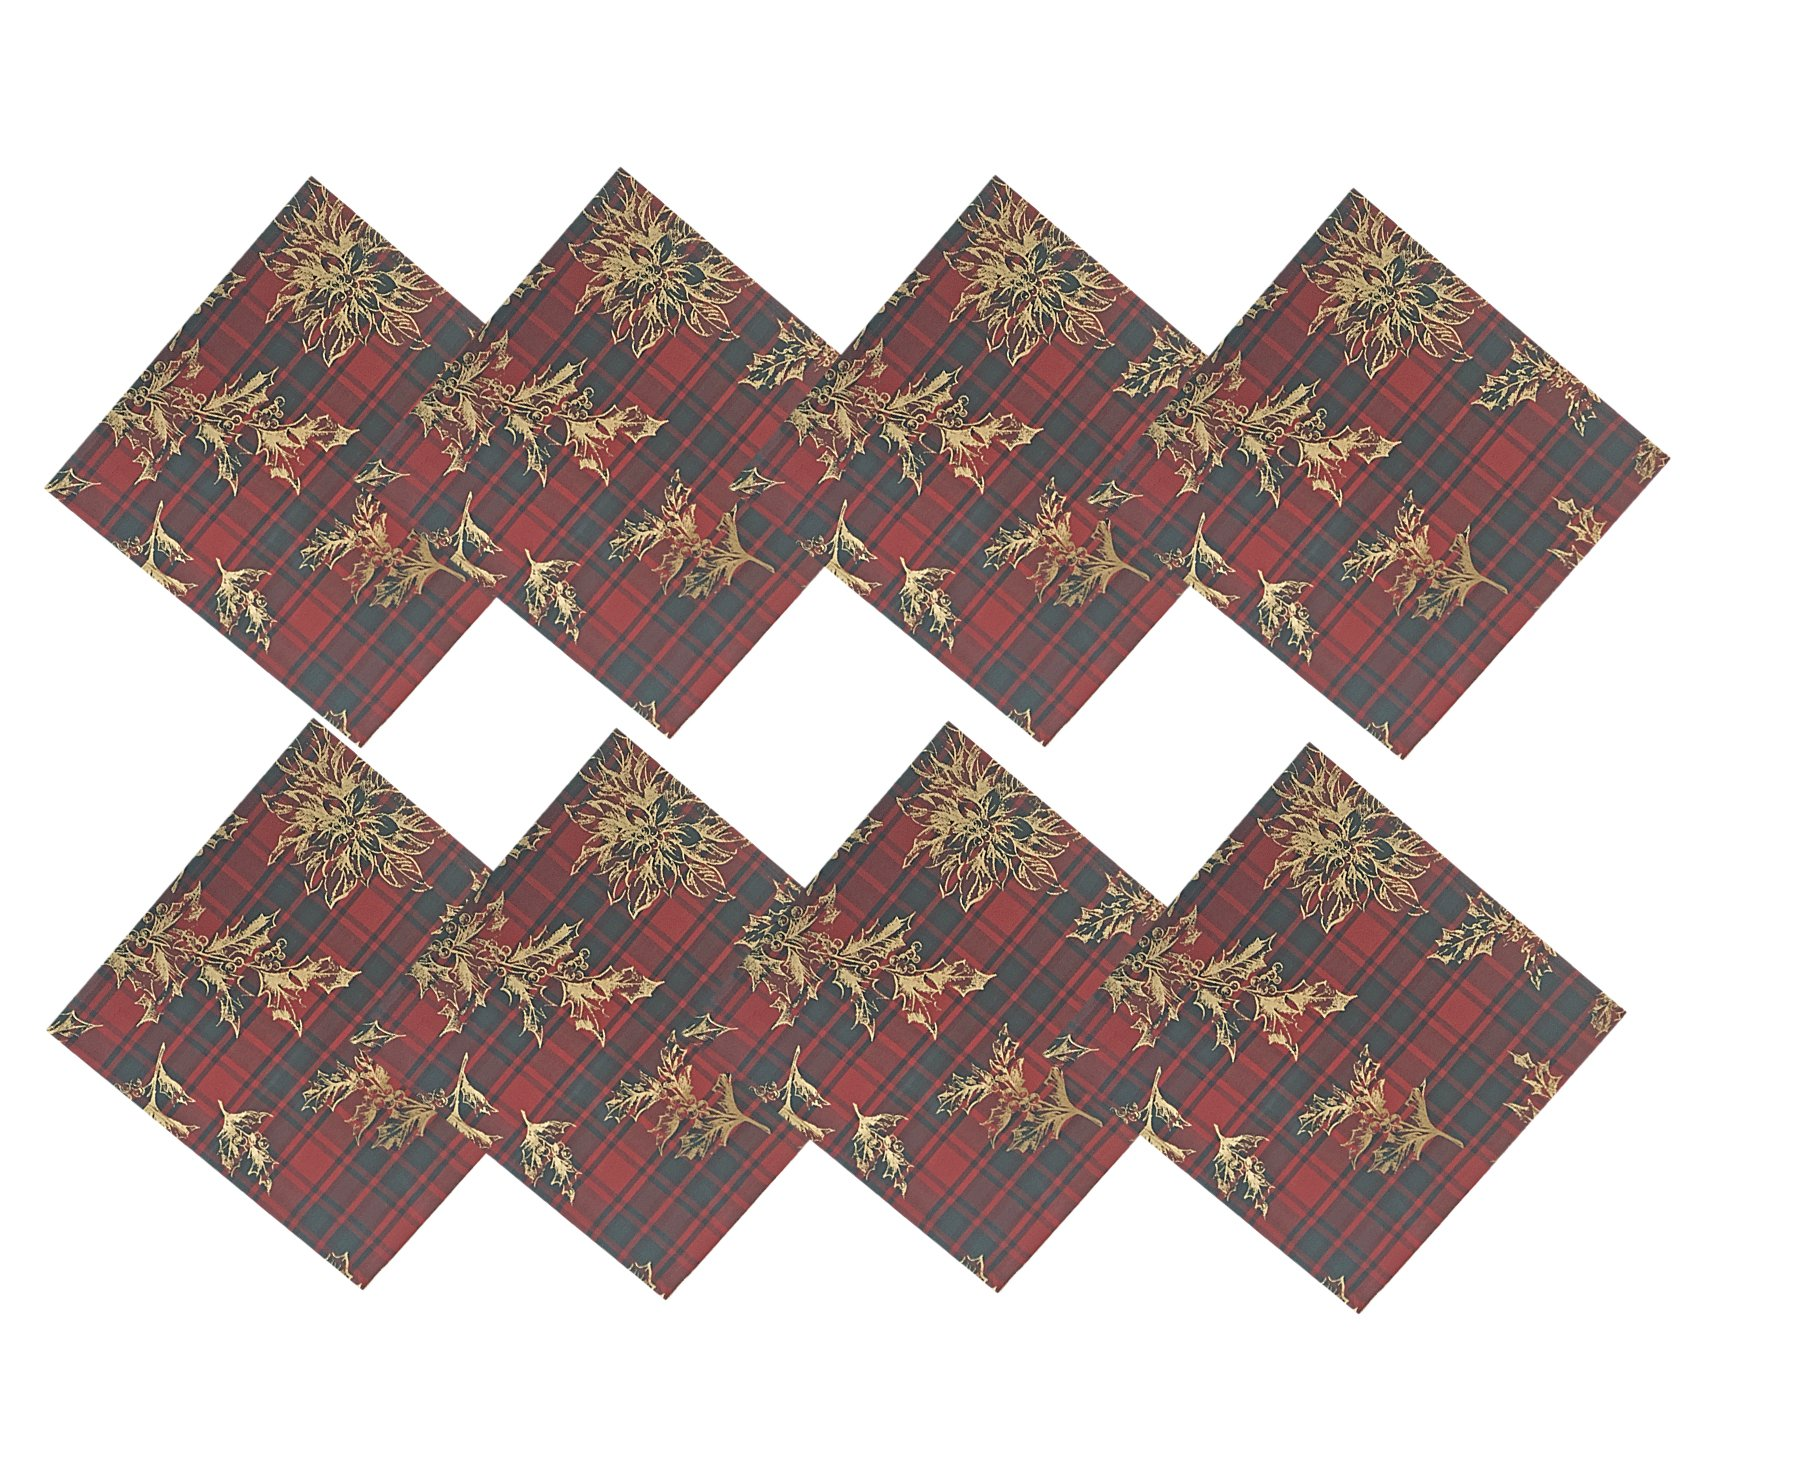 Christmas Holly Lodge Plaid, Red, Green and Gold Cotton Weave Holiday Napkins, Set of 8 Napkins